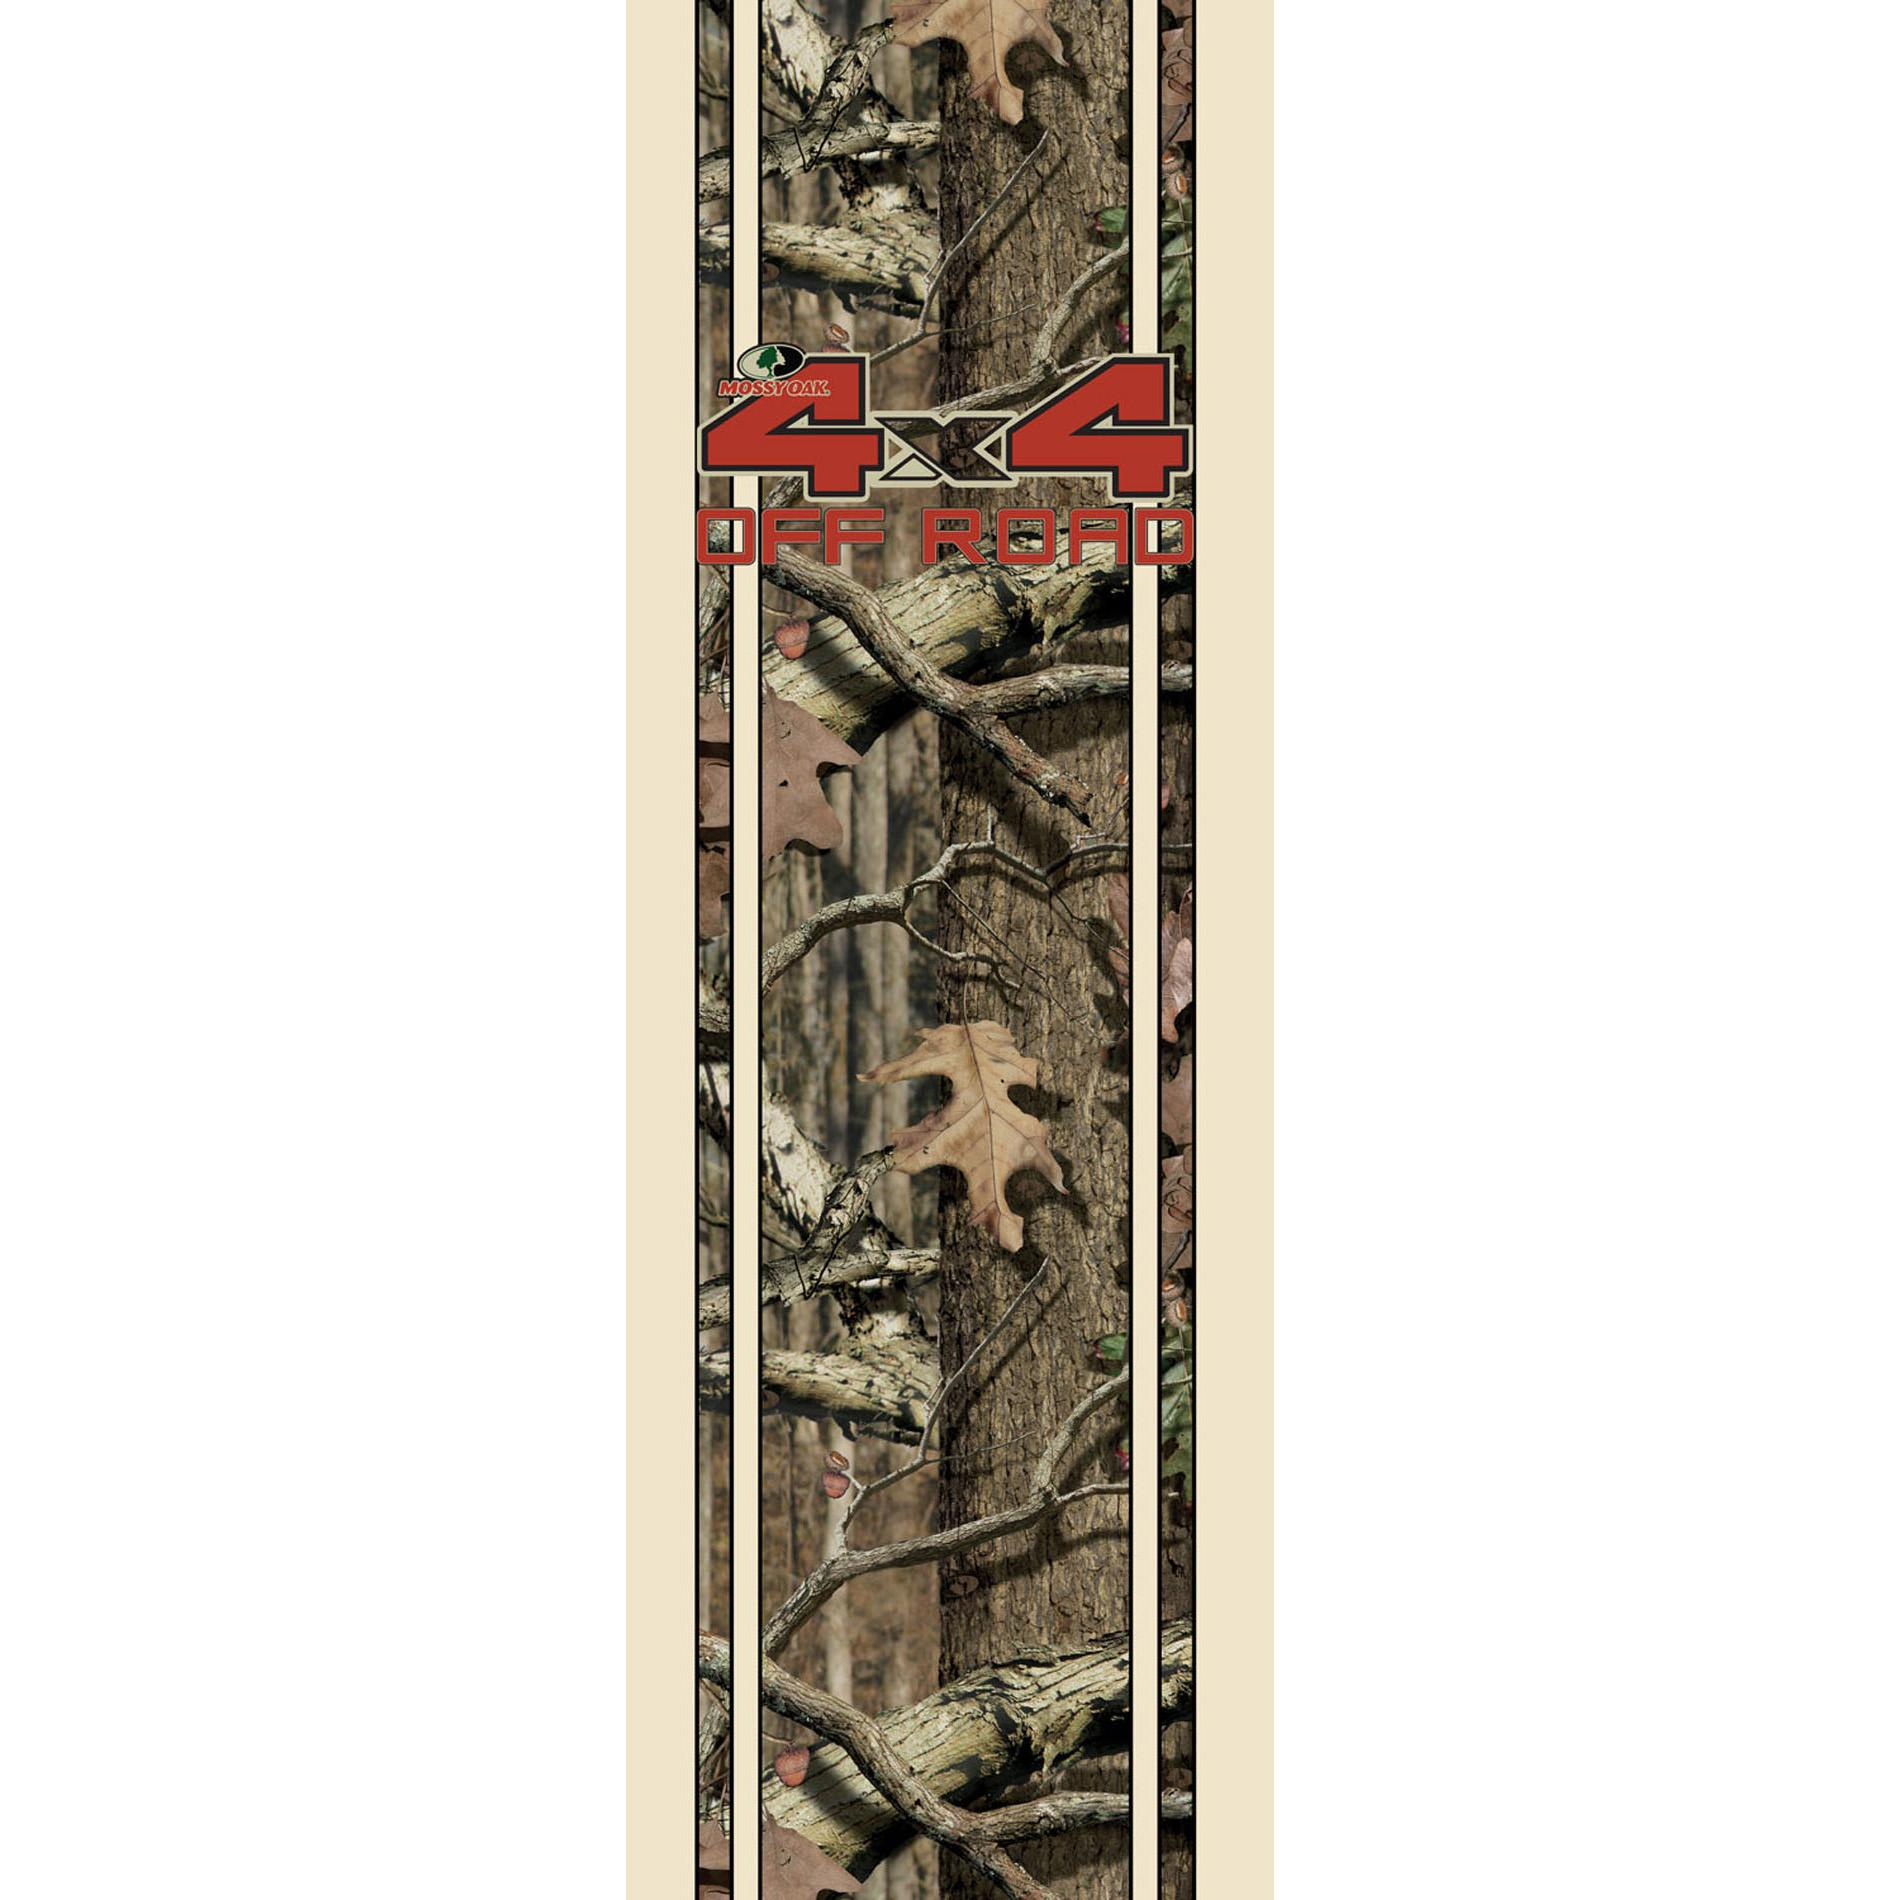 Mossy Oak Infinity Camo Red Off Road Rear Quarter Panel Kit - Thumbnail 1